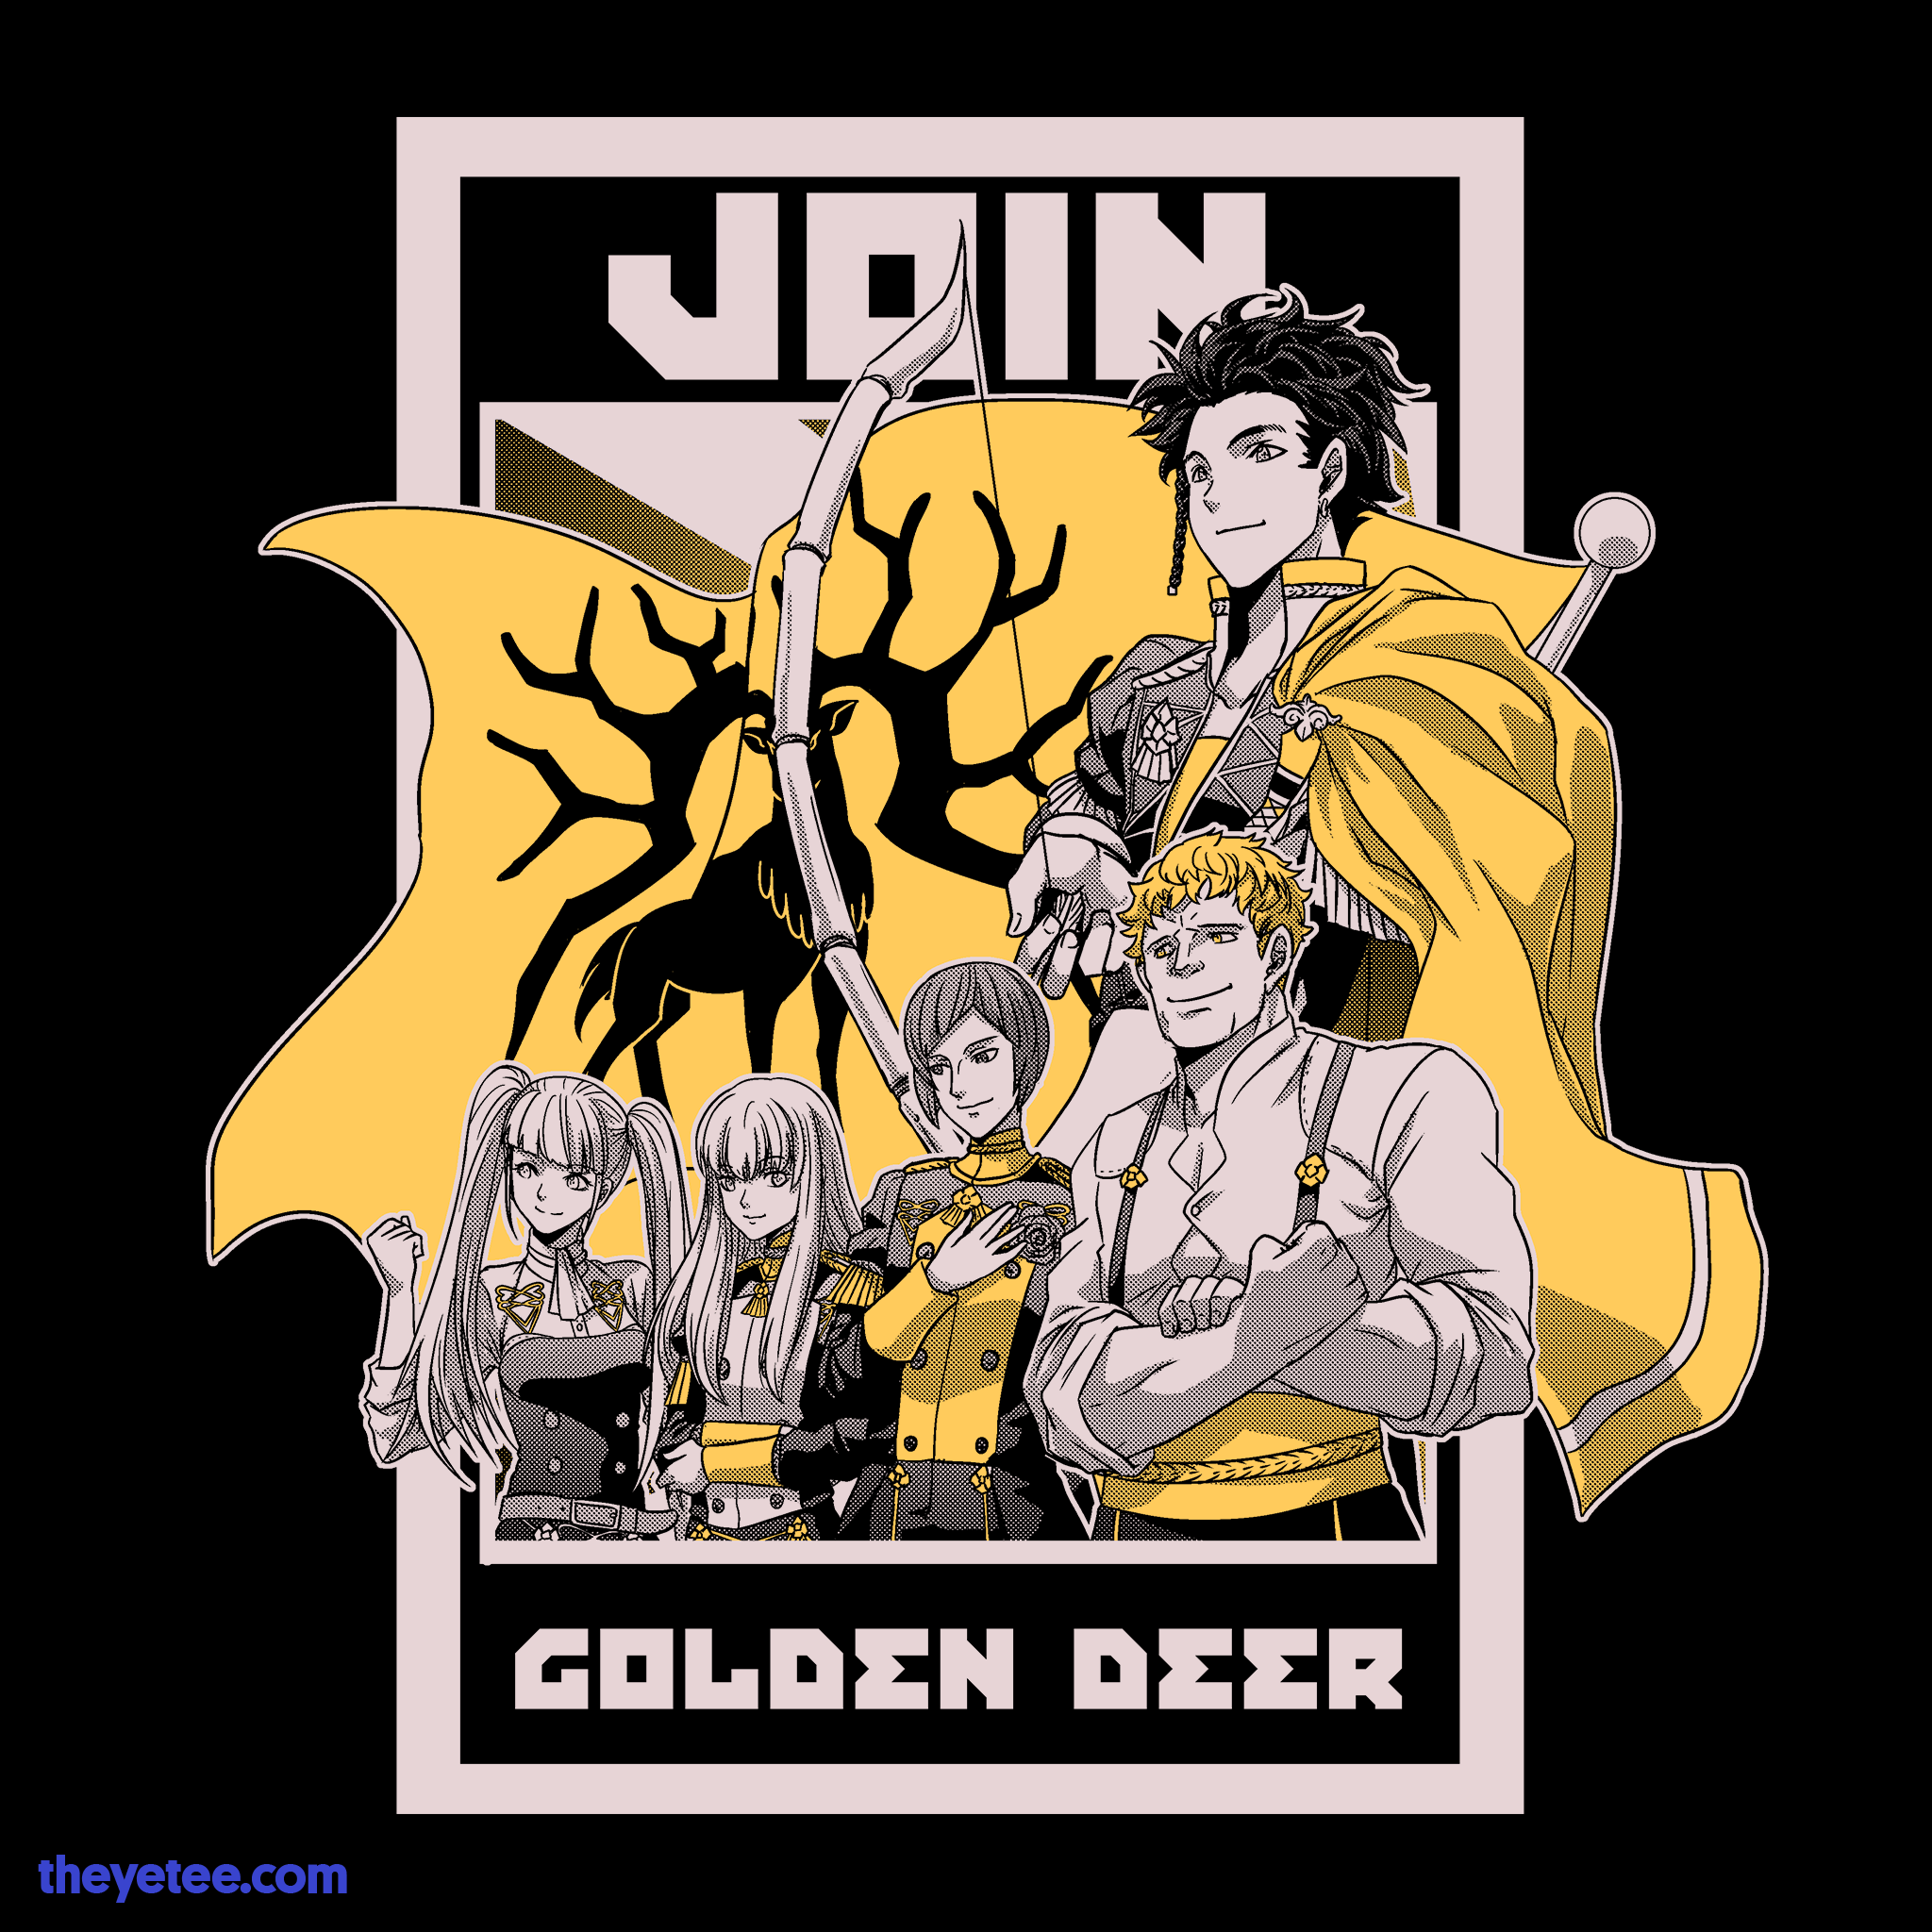 Image of Join Golden Deer